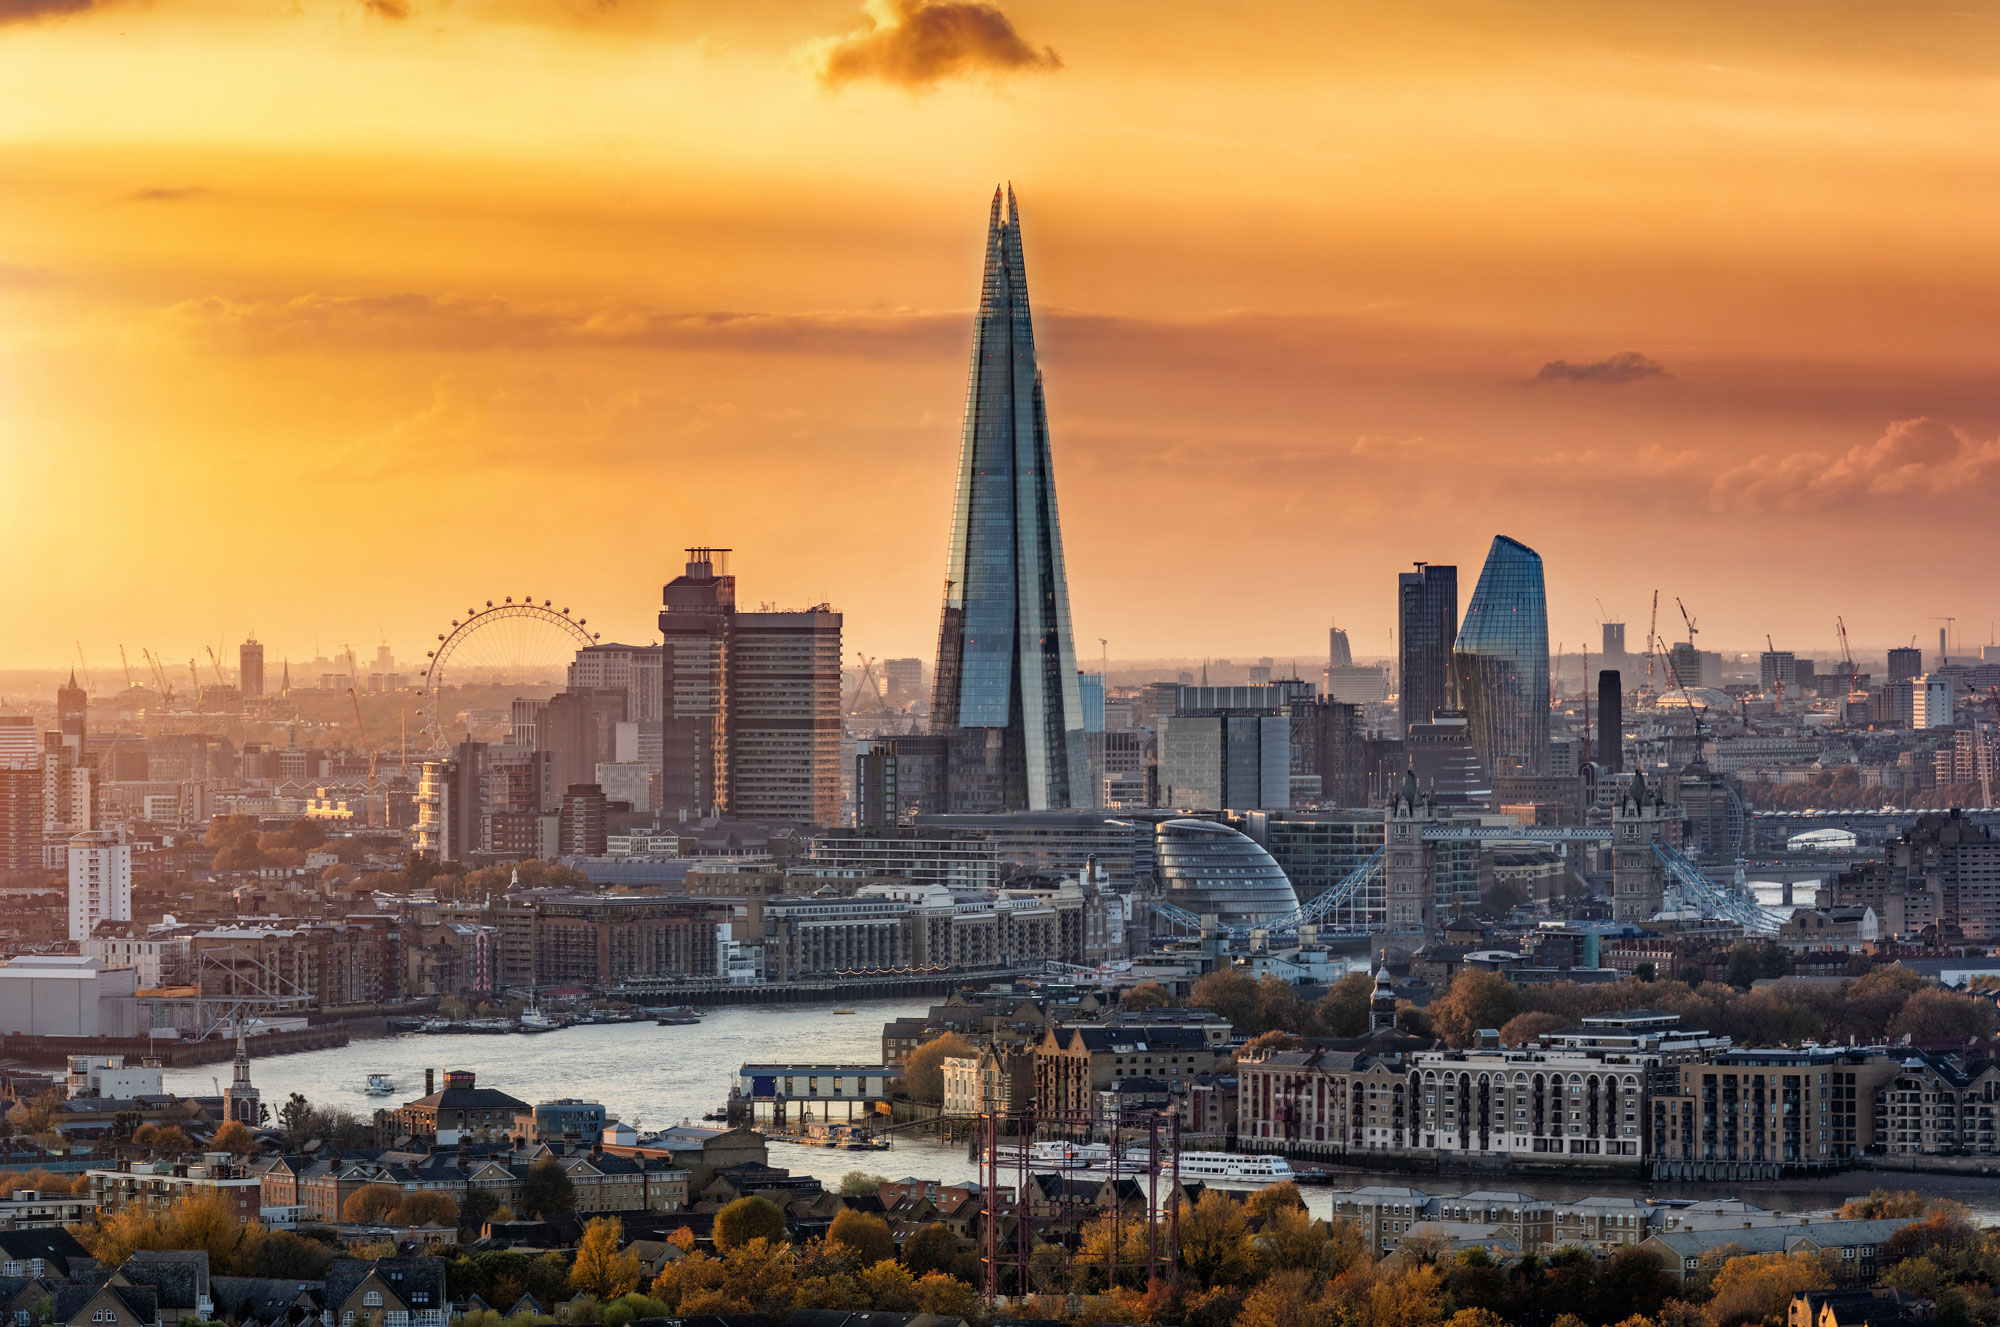 View to the modern skyline of London, United Kingdom, in autumn during sunset time with all the popular tourist attractions